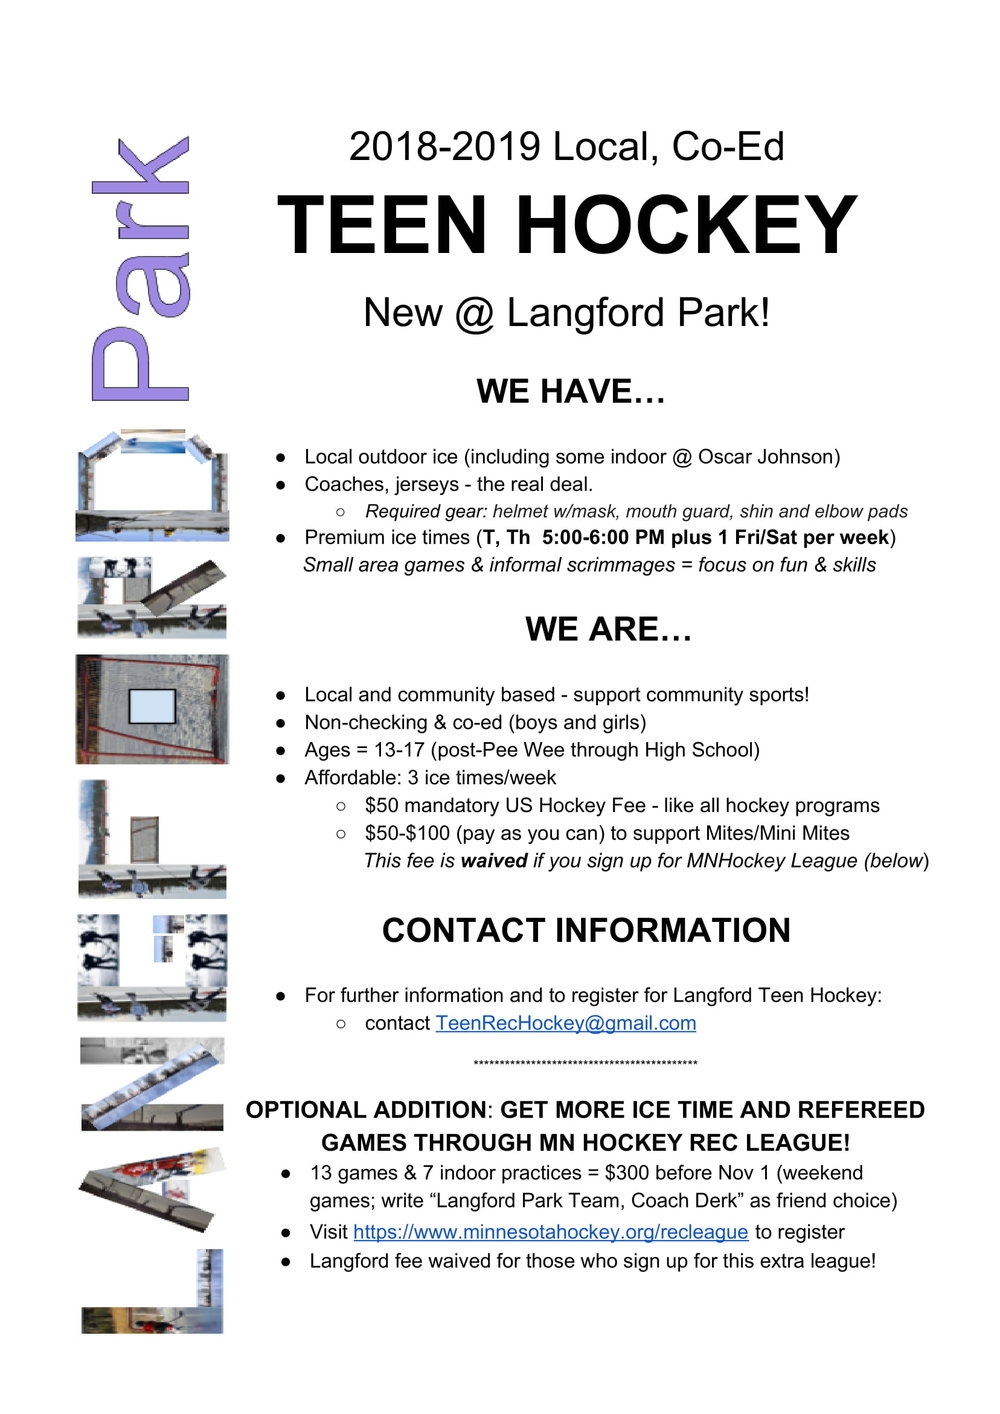 FINAL Langford Teen Hockey Flyer-1.jpg